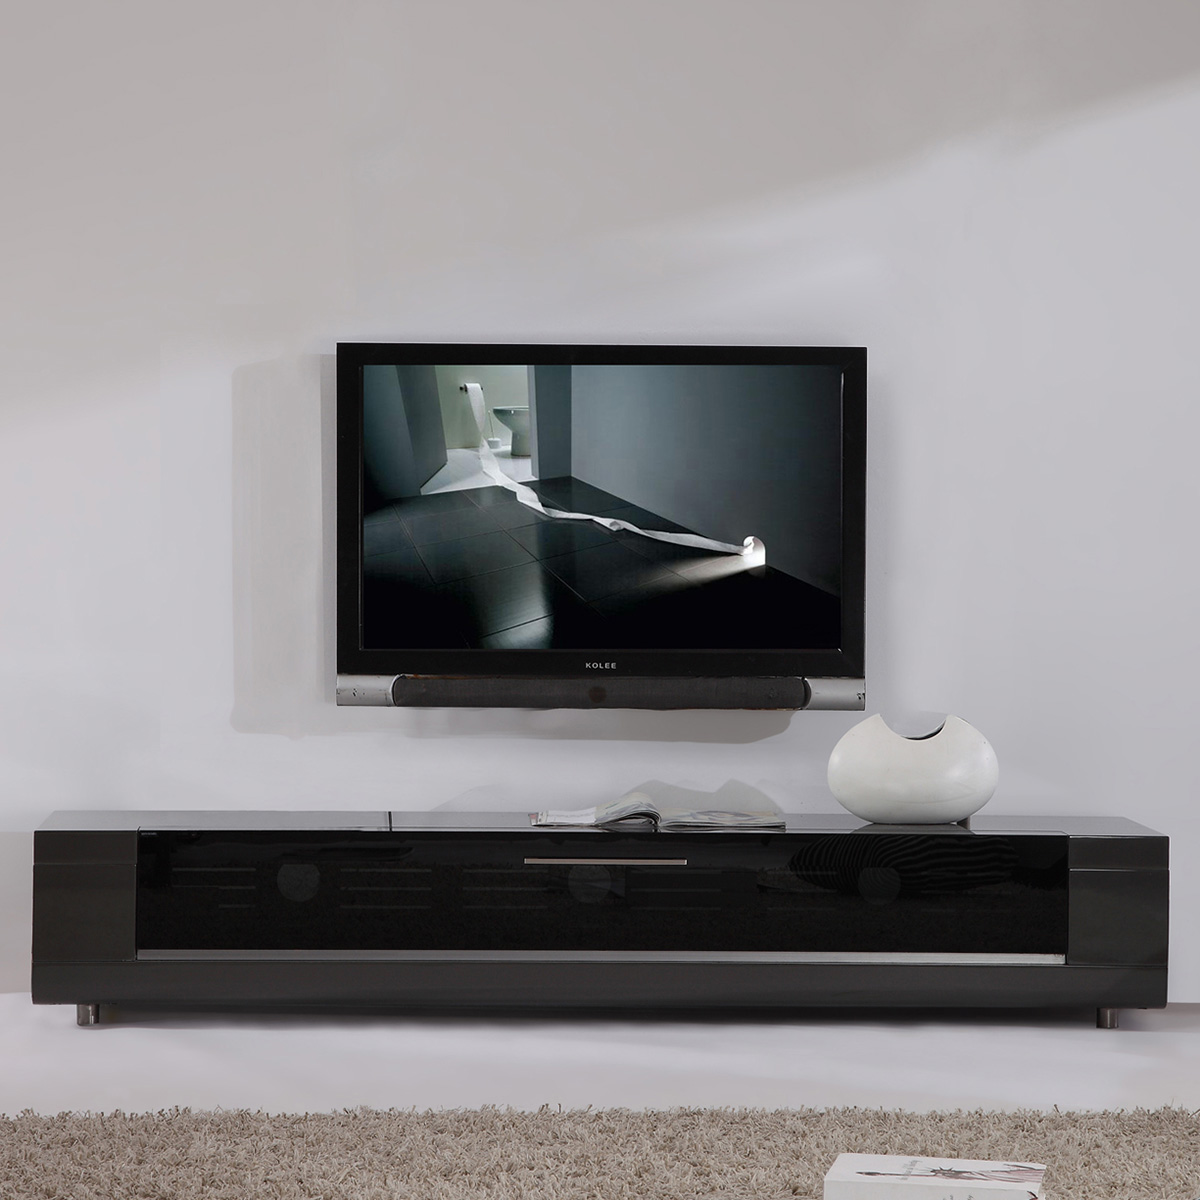 Editor Remix 79  Contemporary TV Stand in High Gloss Gray Lacquer  Flip  Down Glass. B Modern Minimalist Design Contemporary TV Stands   Furniture at